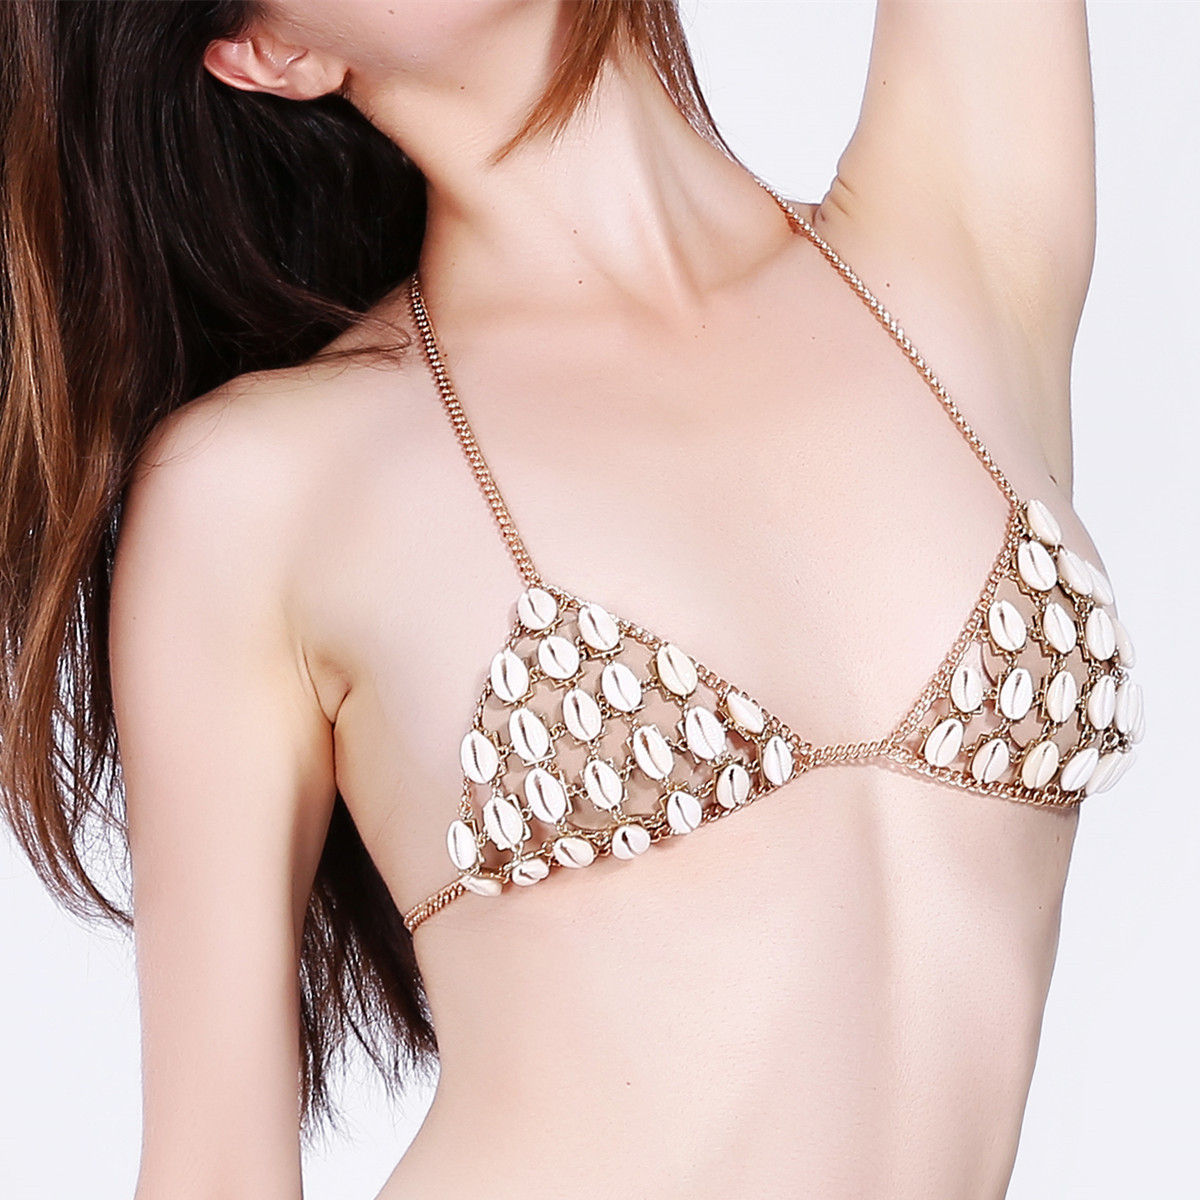 Sexy Hollow Shell Beach Breathable Free Bra Body Chain